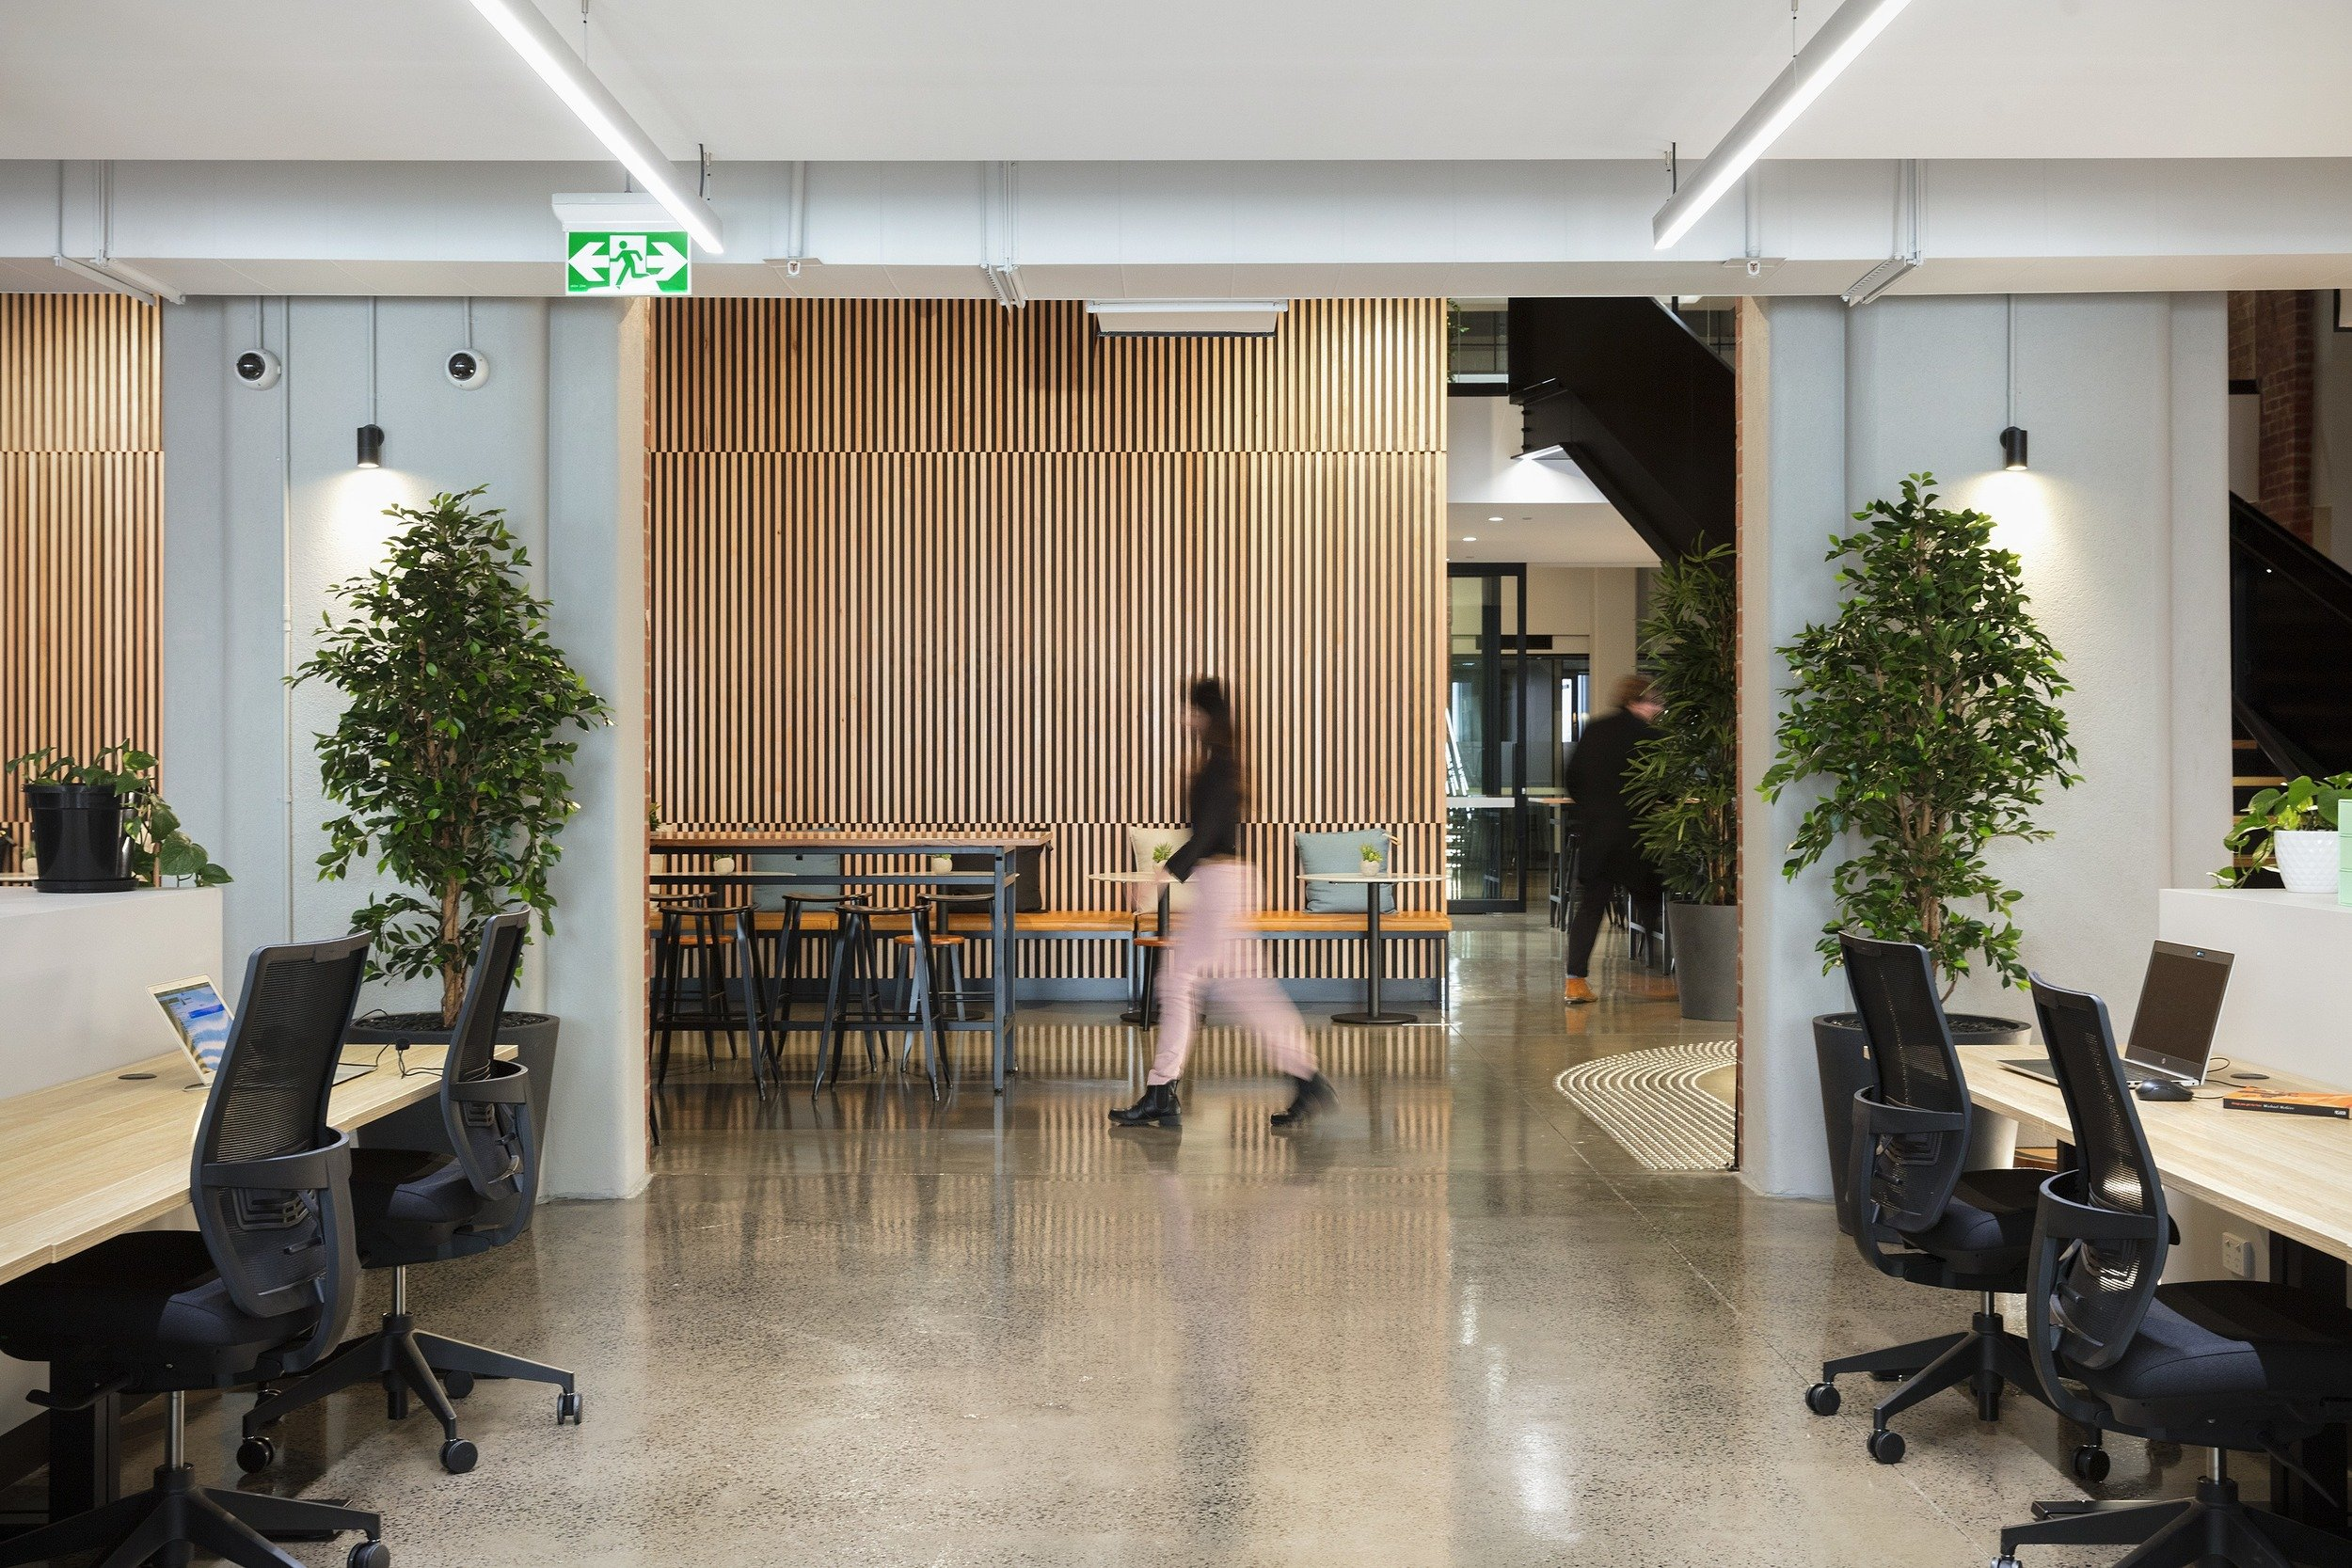 Taking on a Lease vs. Investing in Coworking: What's Right for You?